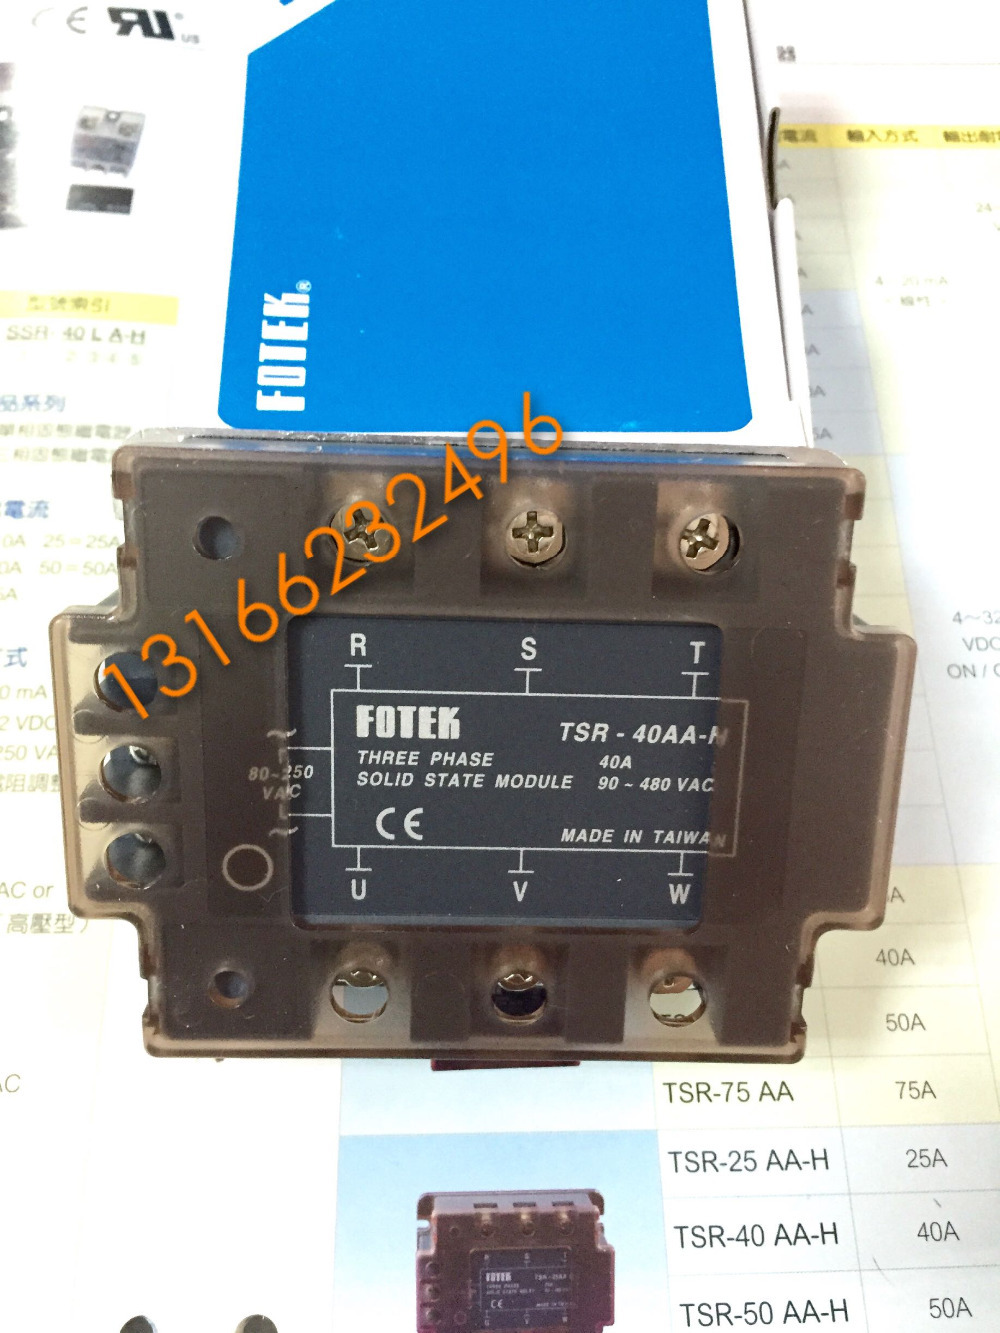 100% Original Authentic Taiwan's Yangming FOTEK three-phase solid state relay TSR-40AA-H saimi skdh145 12 145a 1200v brand new original three phase controlled rectifier bridge module